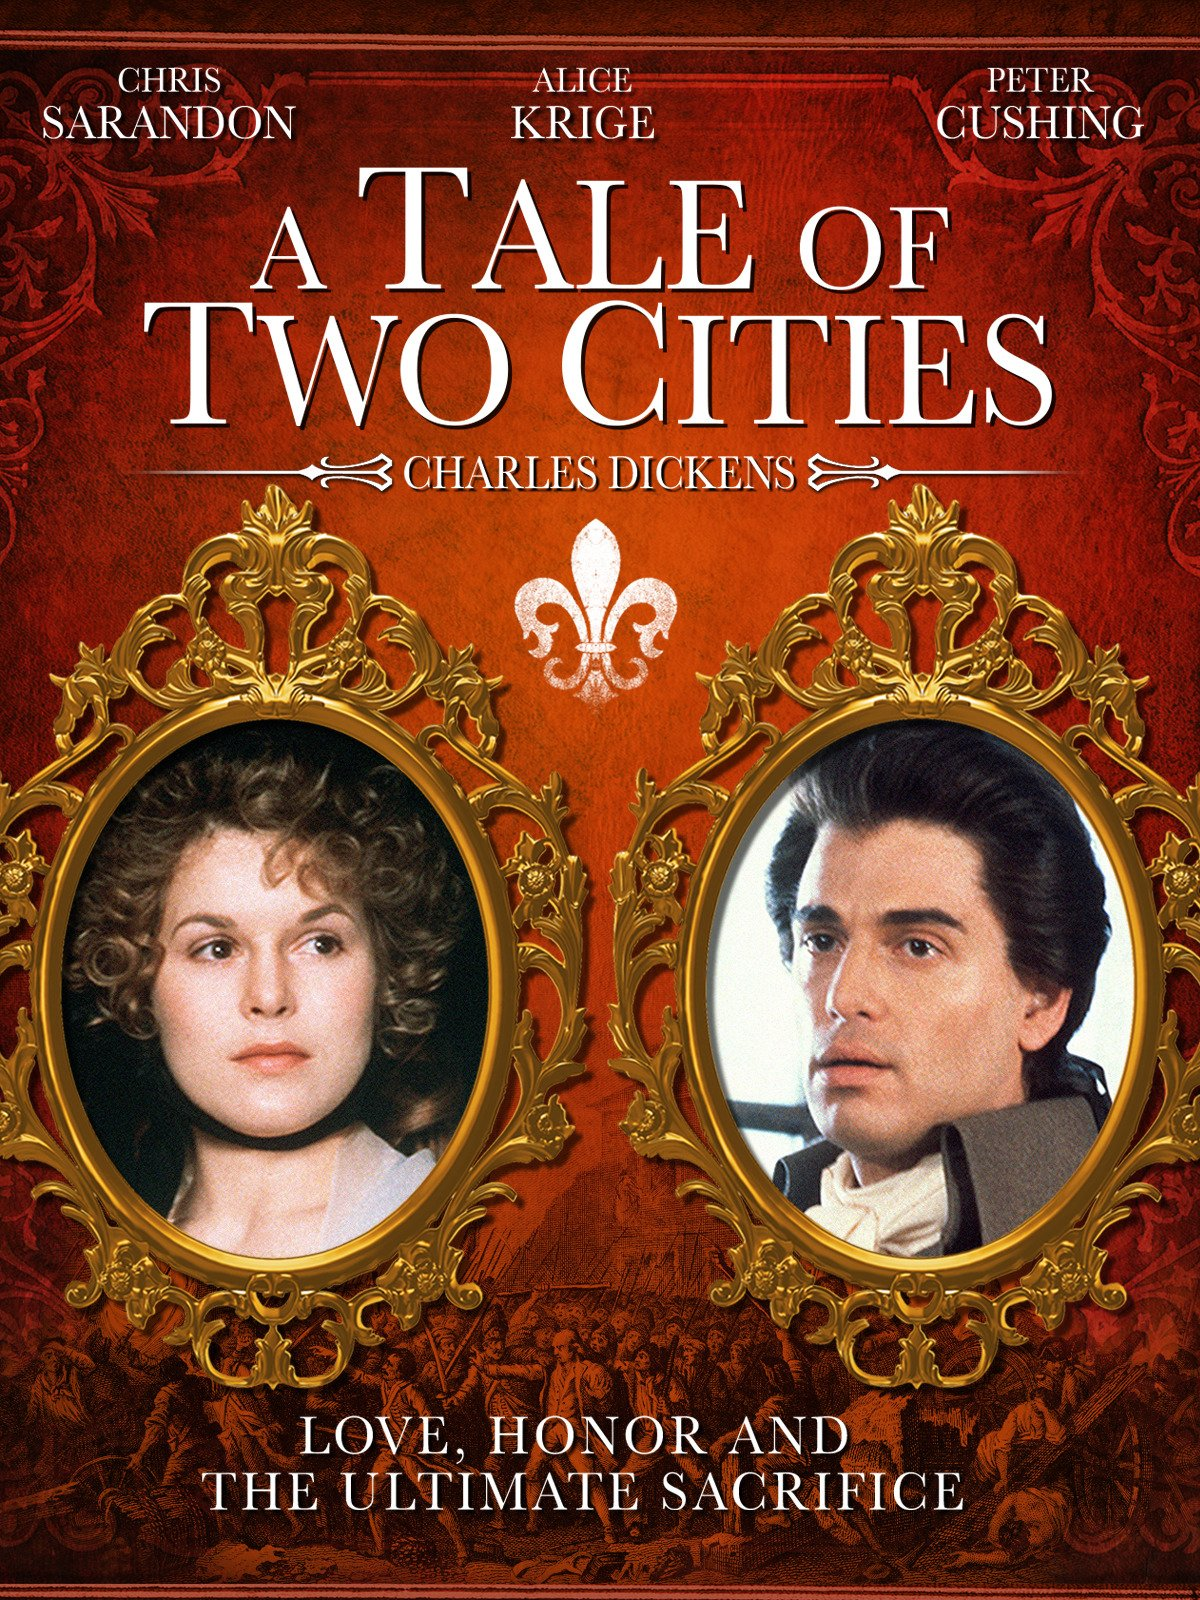 a tale of two cities movie 2011 free download